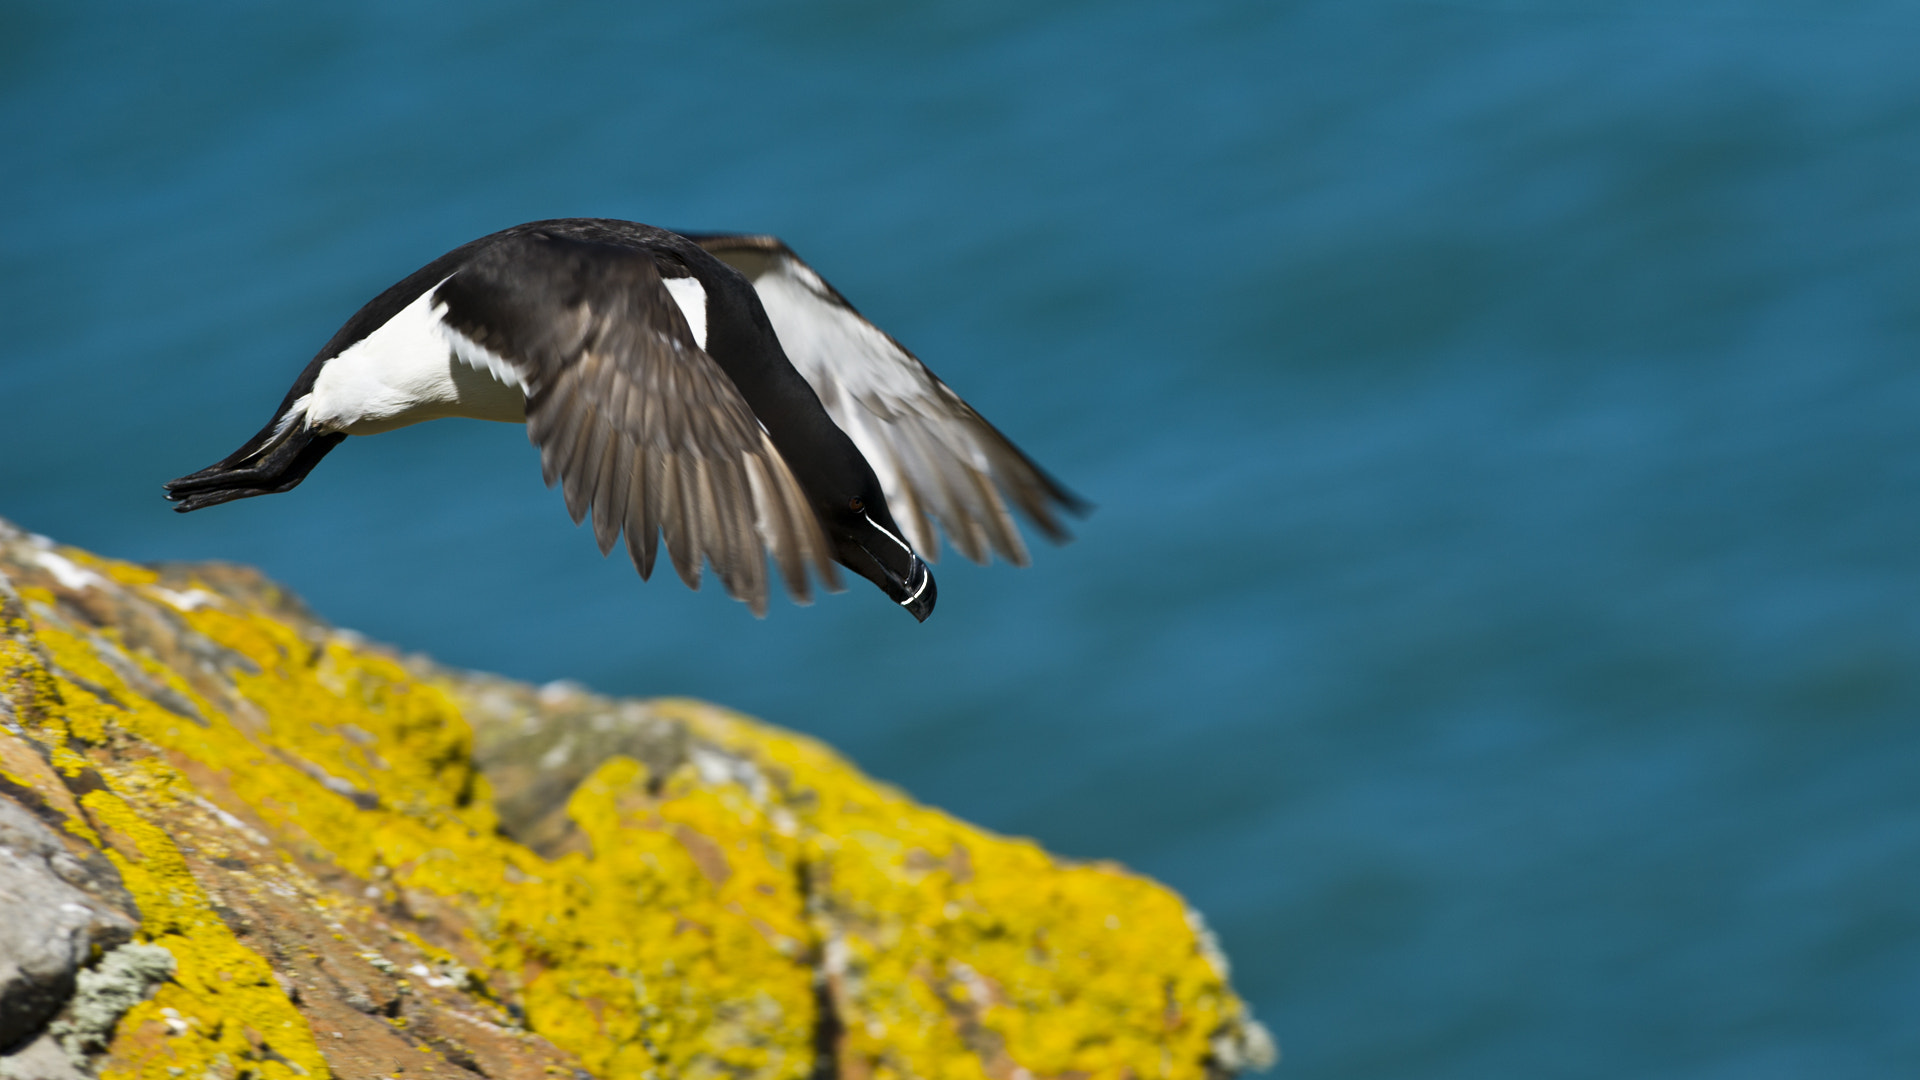 Photograph Razorbill by allan squires on 500px